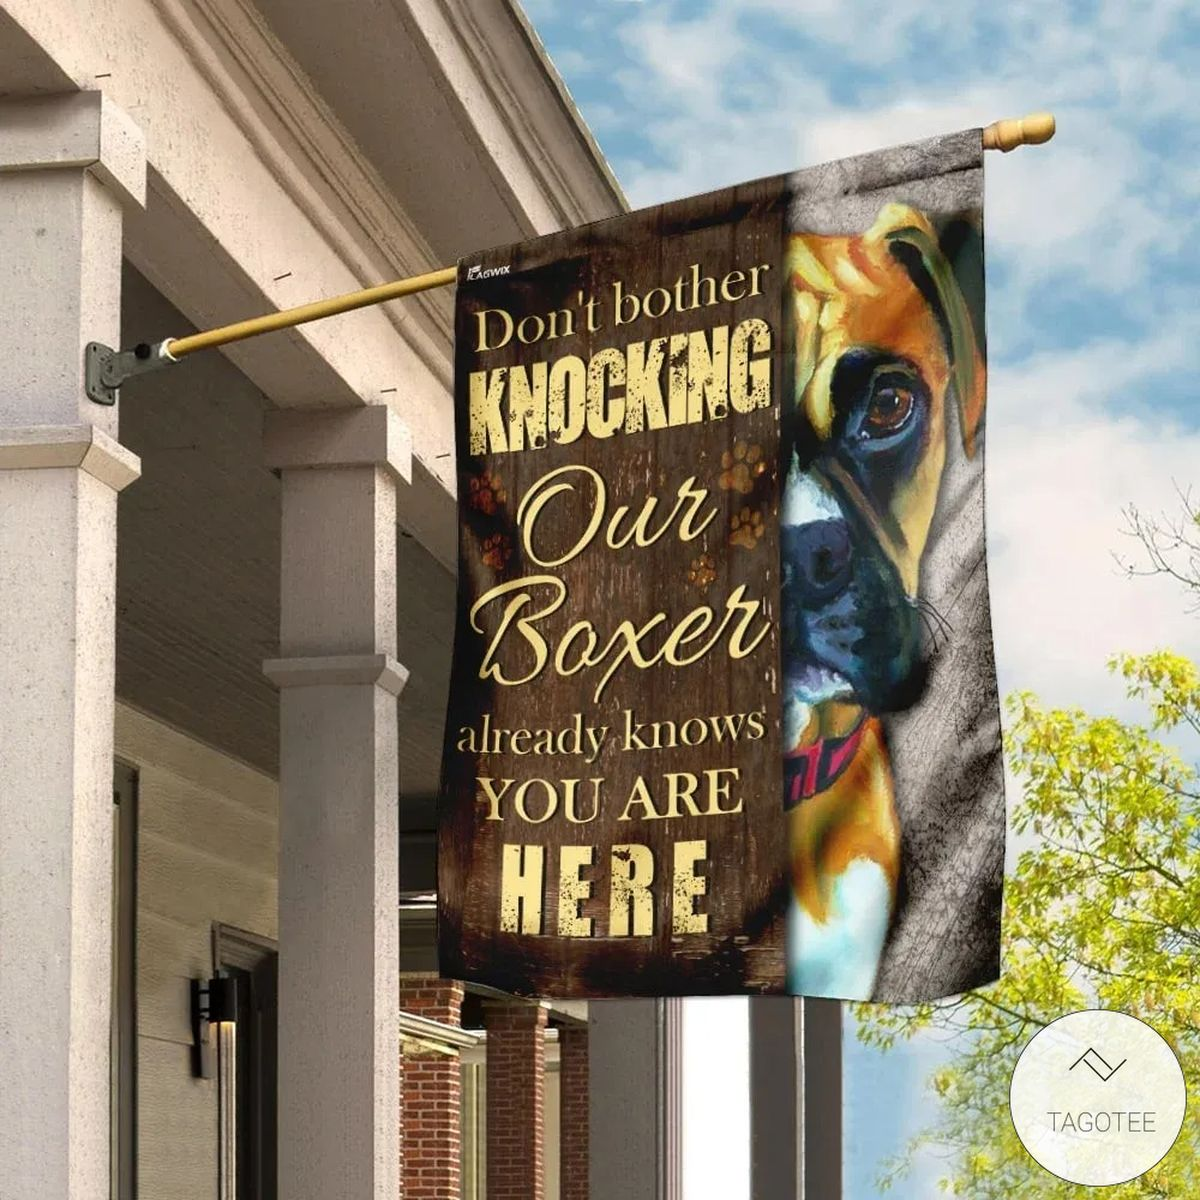 Don't Bother Knocking Our Boxer Already Knows You Are Here Flag